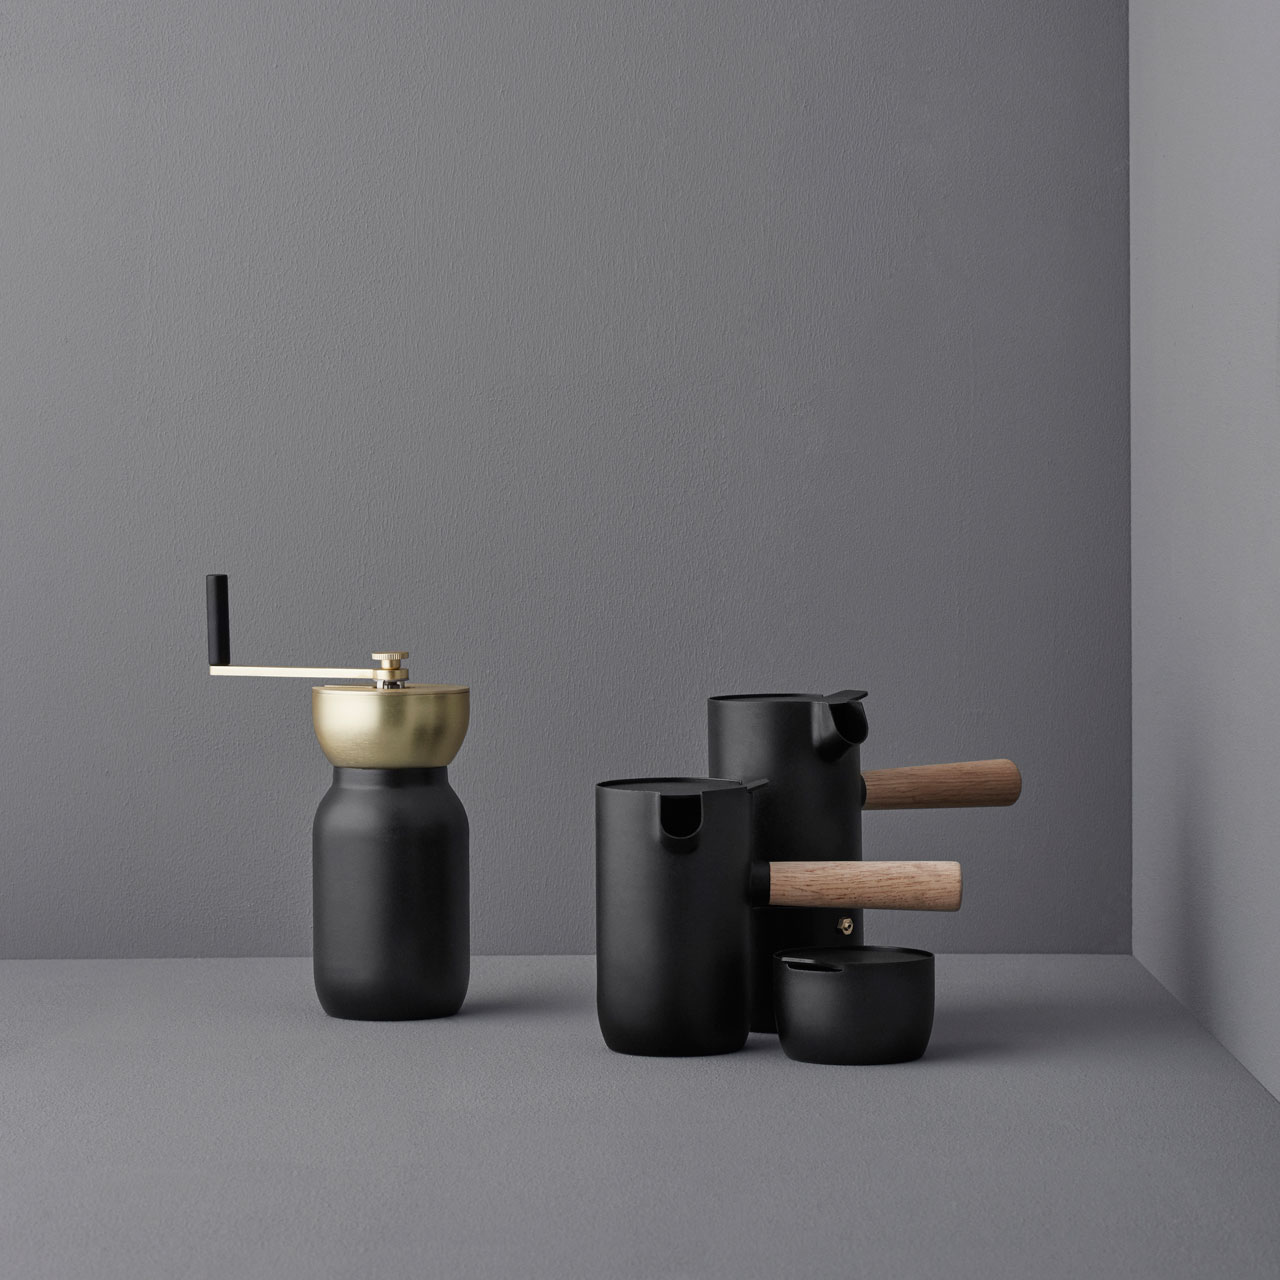 The Collar collection by Daniel Debiasi and Federico Sandri (Something design studio) for Stelton.